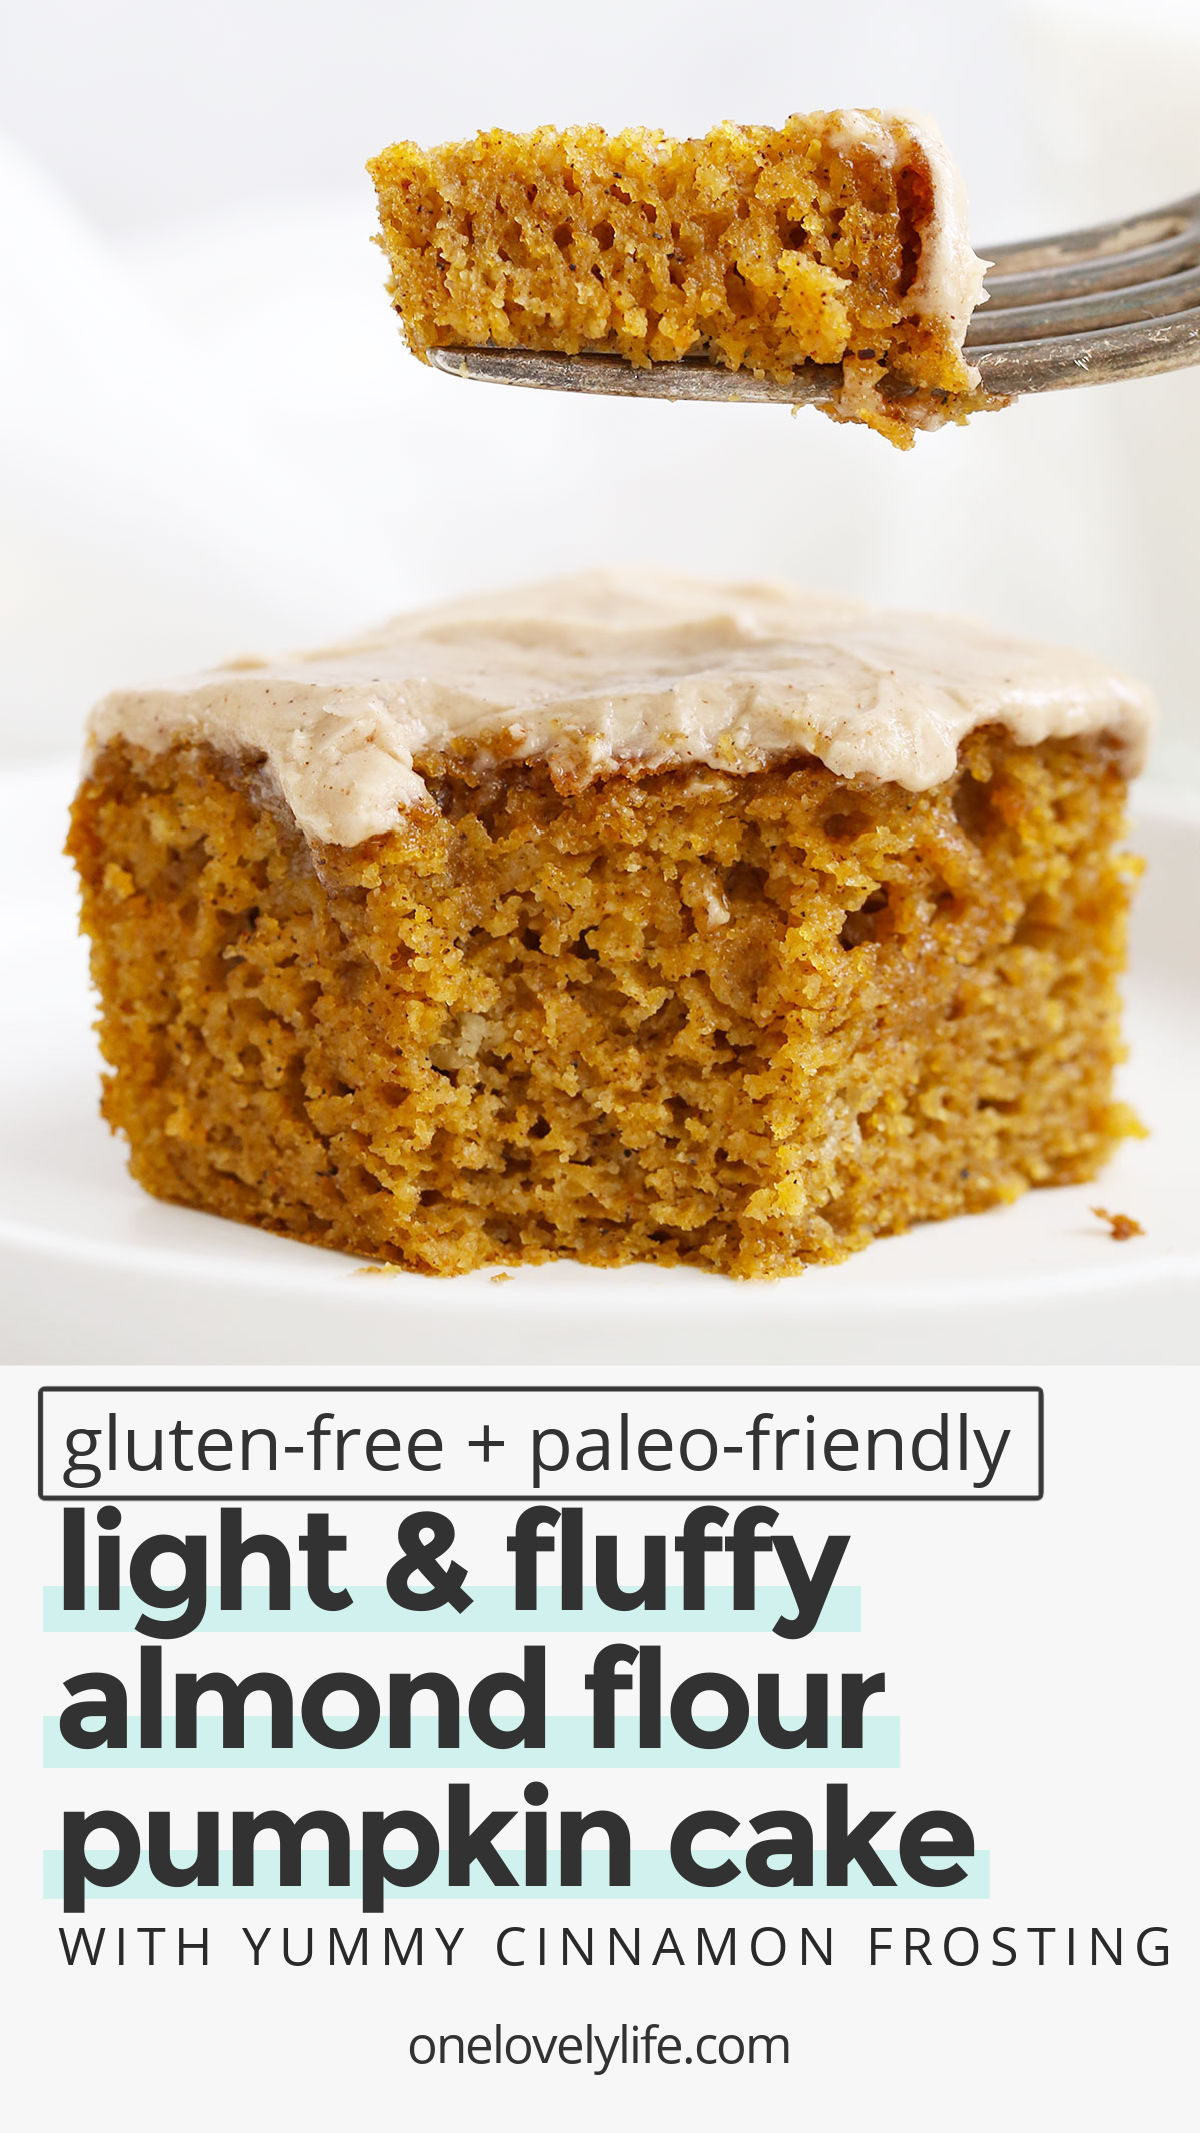 Gluten Free Pumpkin Cake with Cinnamon Frosting - This fluffy, perfectly-spiced pumpkin cake is what fall dreams are made of. It's the best pumpkin cake I've ever tasted! (Paleo-Friendly) // The Best Pumpkin Cake Recipe // Almond flour Pumpkin Cake #glutenfree #cake #pumpkincake #pumpkin #frosting